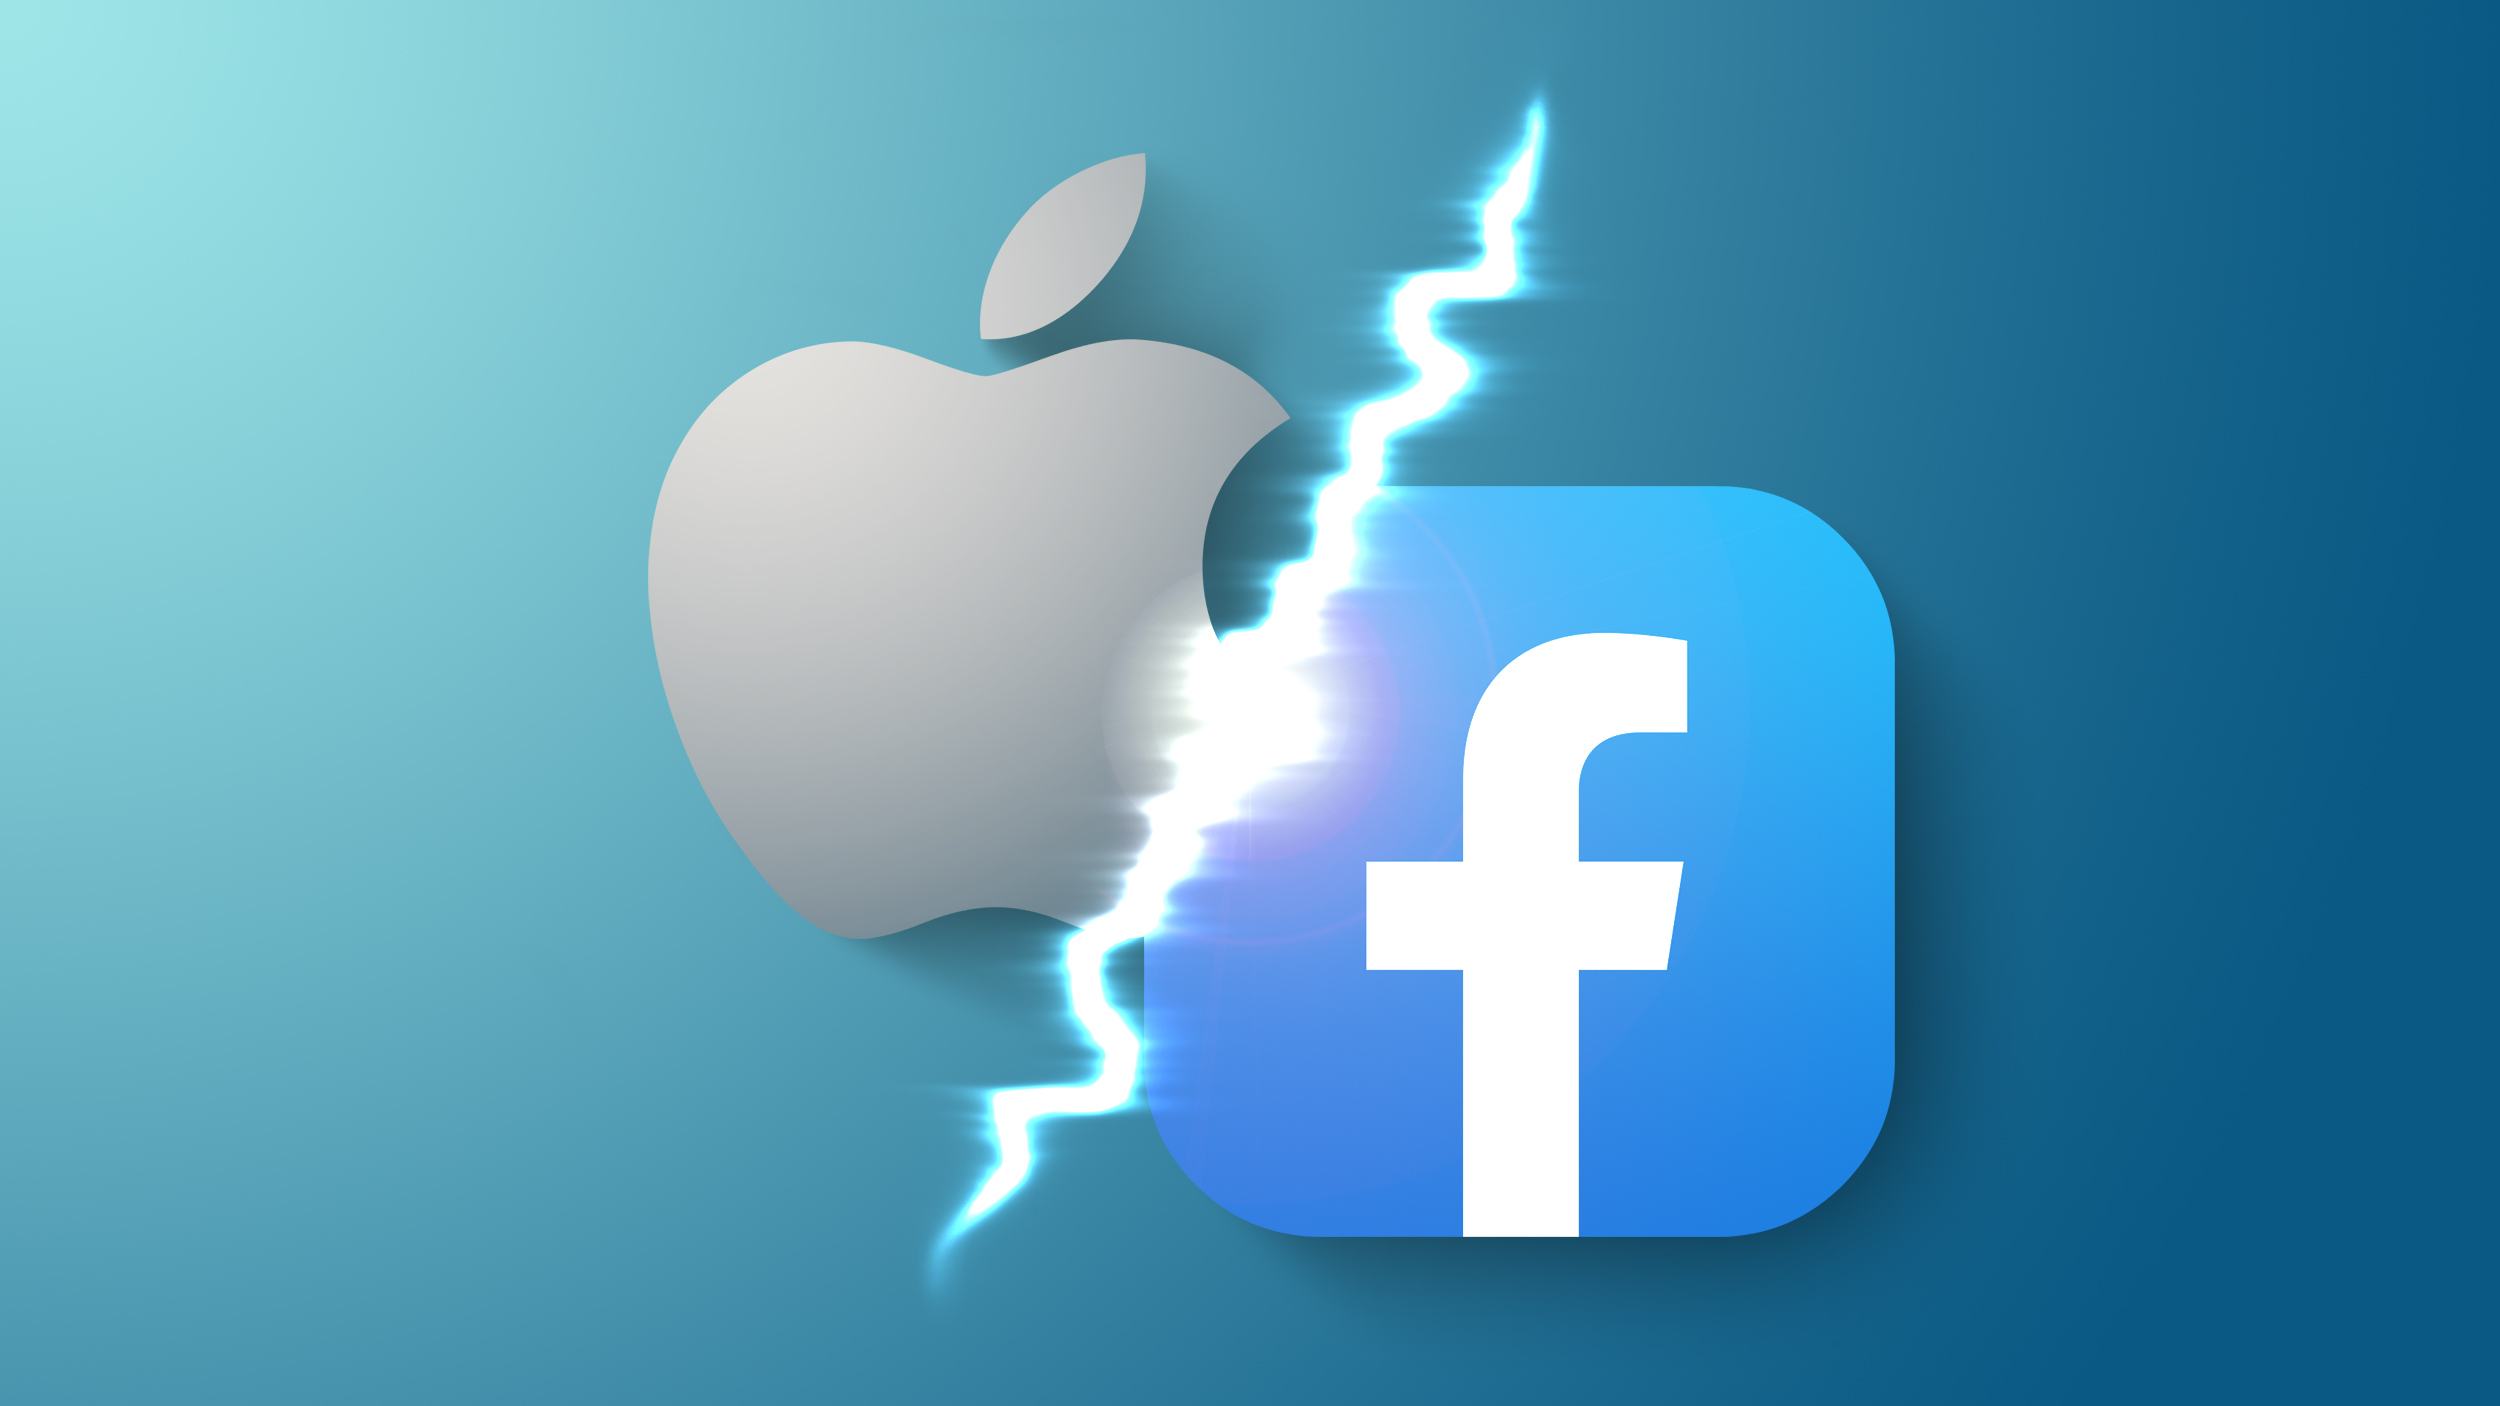 Facebook CEO Mark Zuckerberg Says Apple's Privacy Changes are Self-Serving and Anti-Competitive